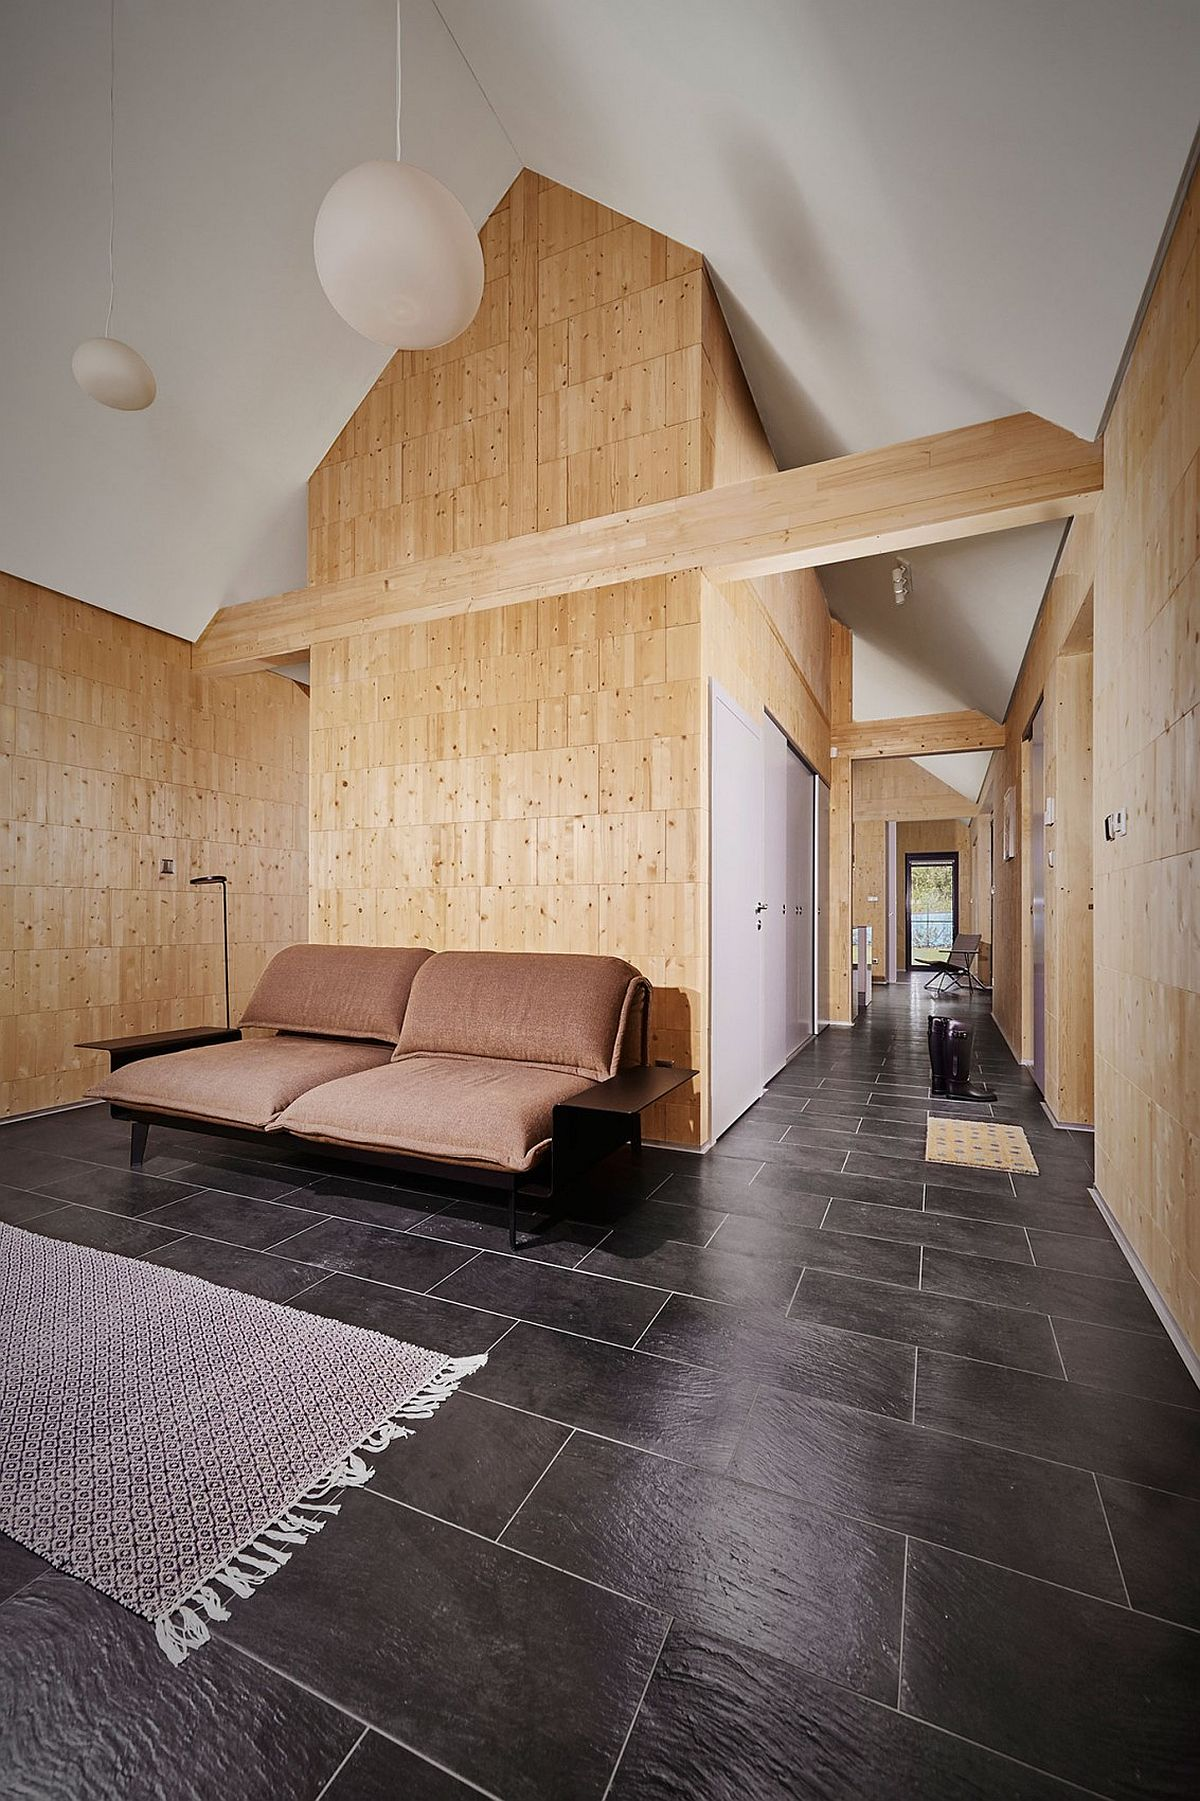 Steko wooden blocks create a cozy home in scenic slovakian - Brick and wood house ...